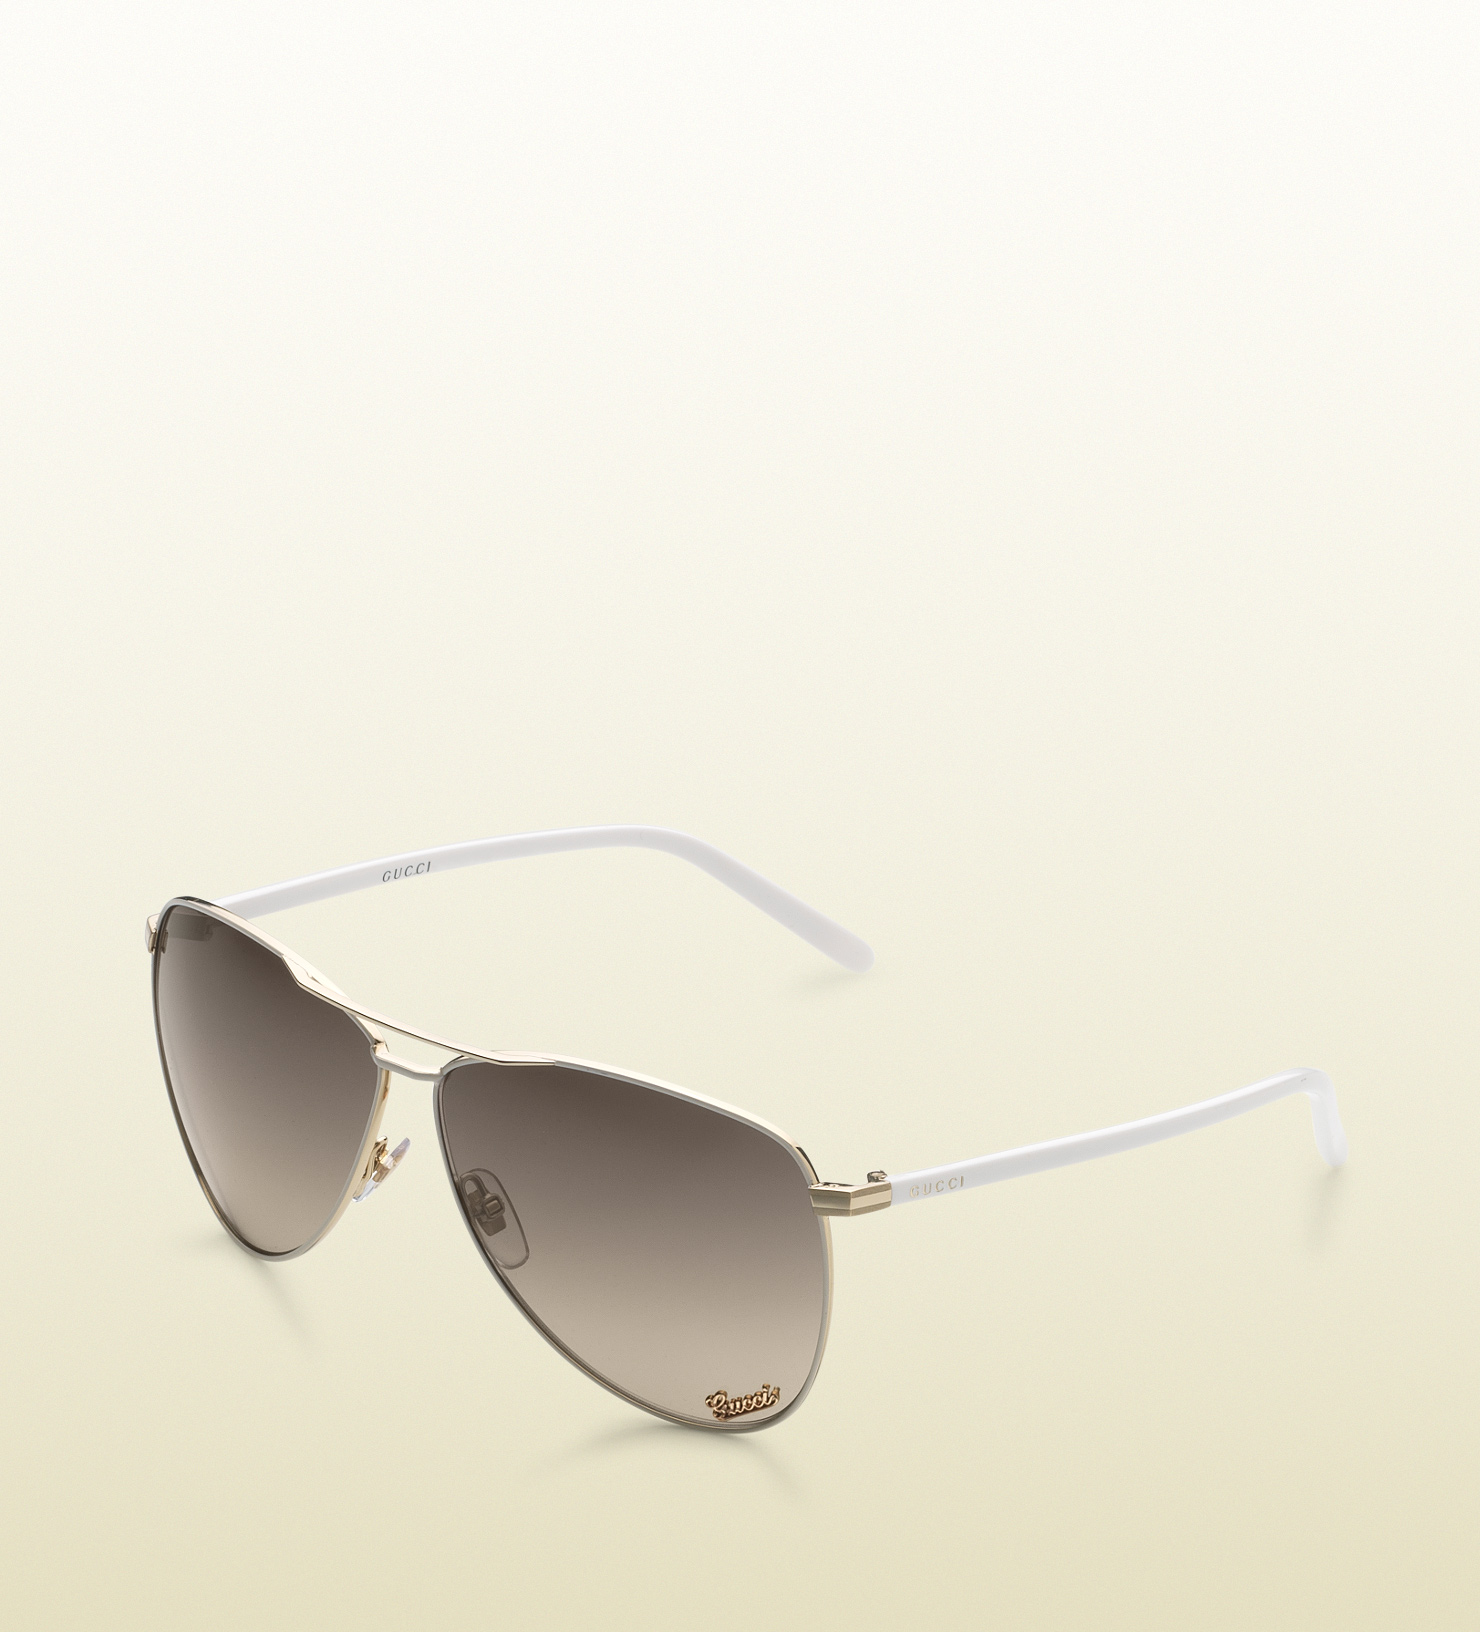 Gucci Aviator Sunglasses with Gucci Signature Pad On Lens and Gucci ... 5edc289f9